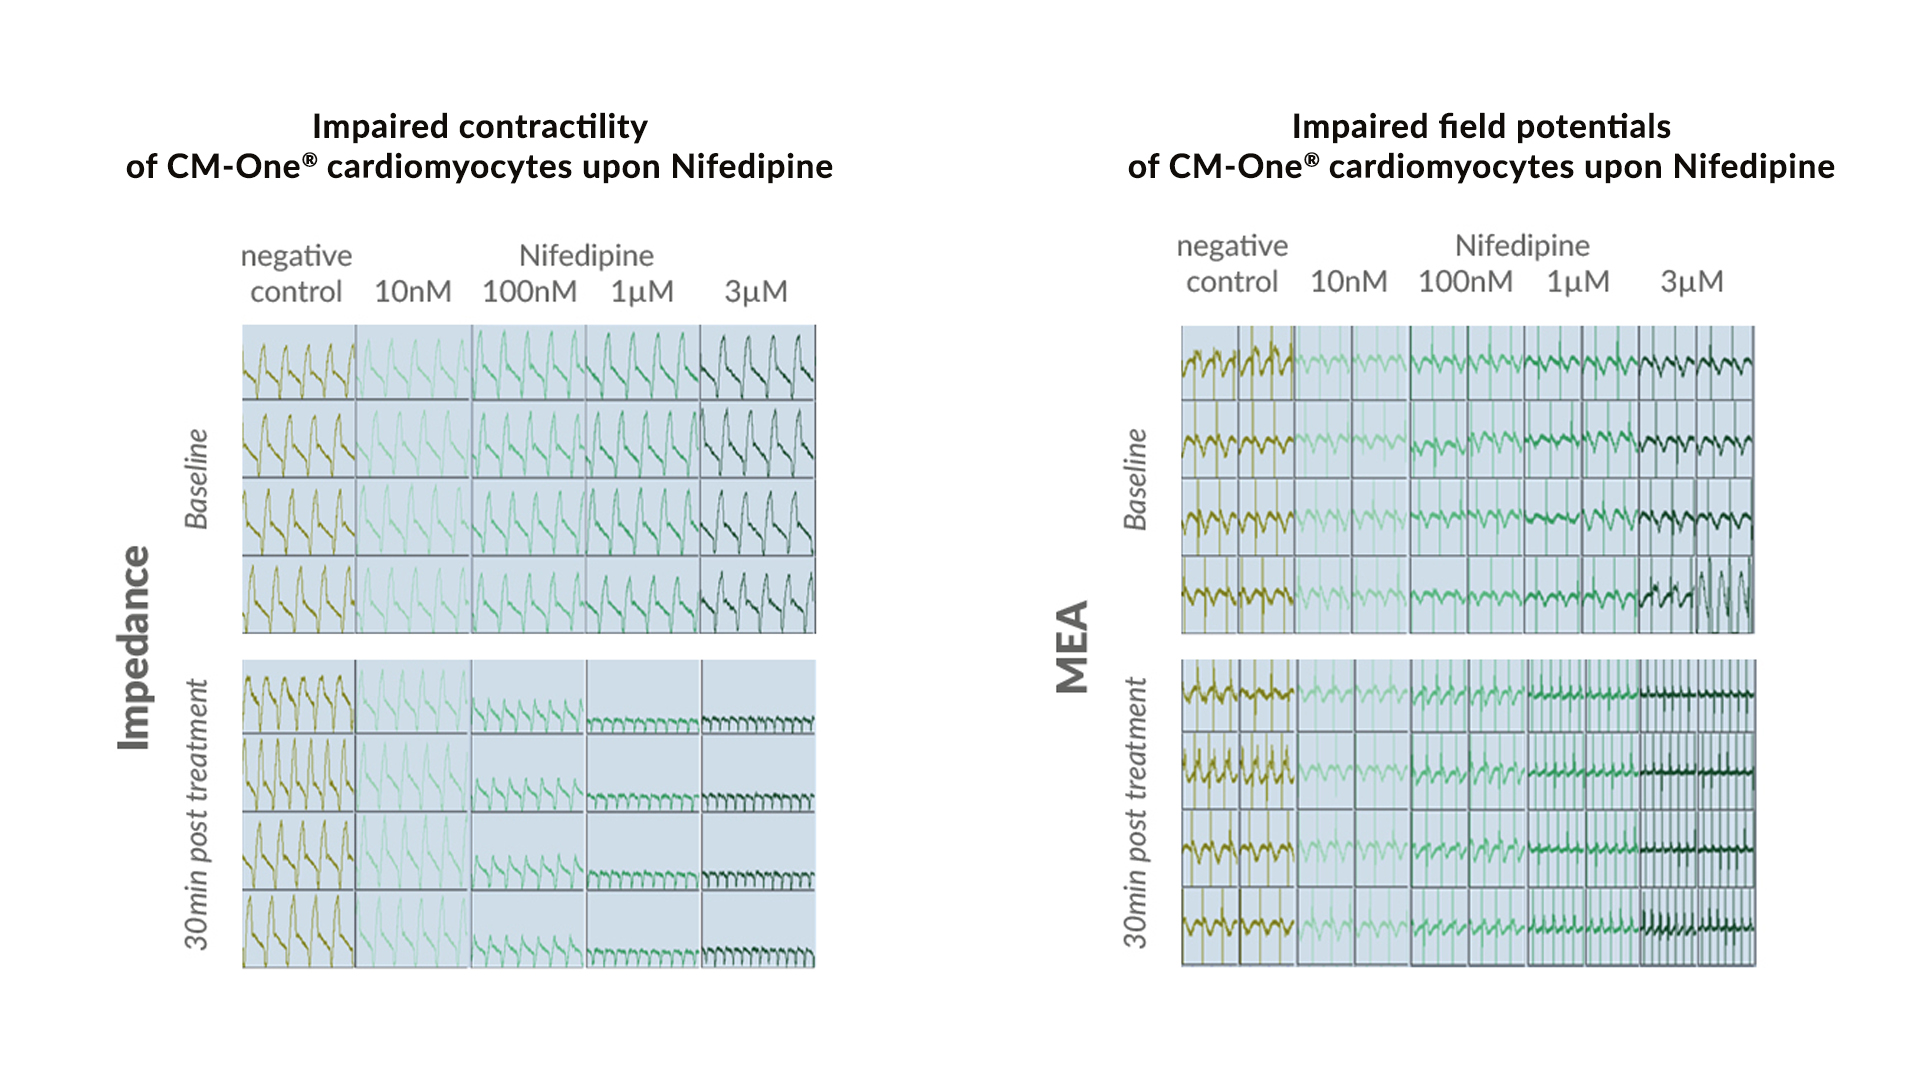 technical-validation-sheet-cm-one-human-cell-design-2020-12-figure-3